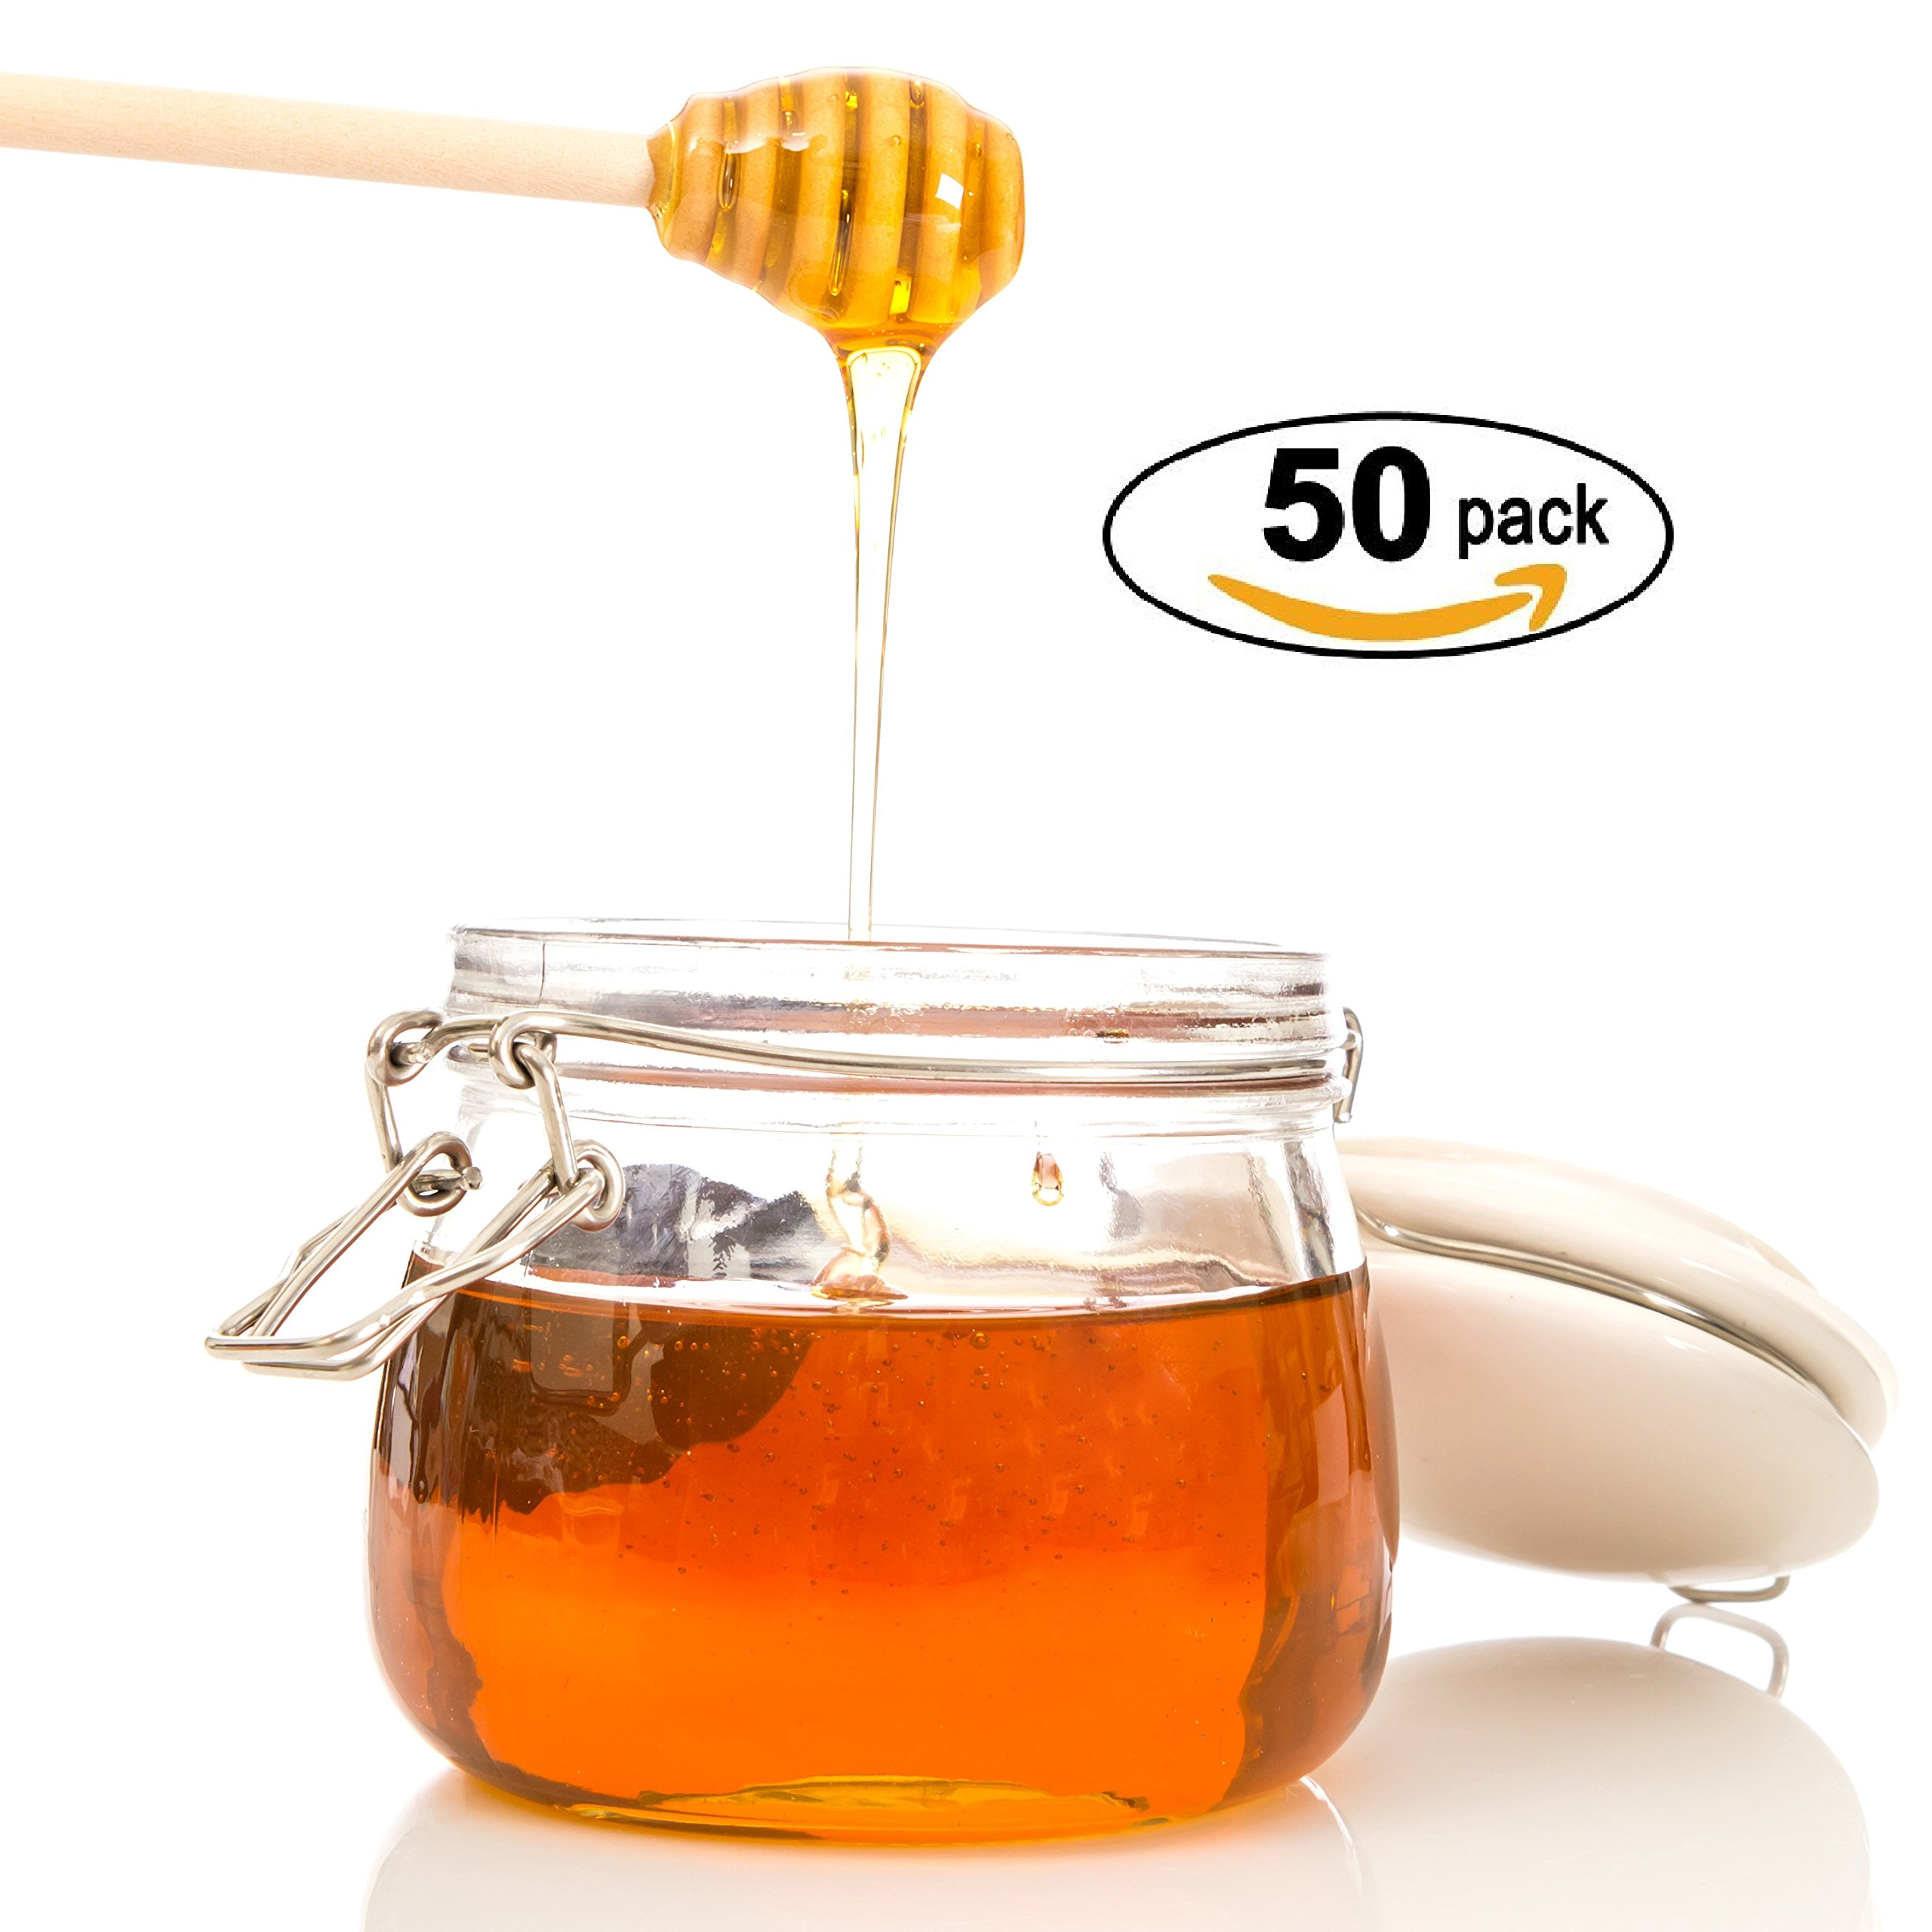 Honey Dipperz 50 PACK - 6'' Inches Long (16cm) Wooden Honey Dipper Drizzler Stirring Stick, Spoon Rod Muddler Dispense, Great gift for Parties, Wedding, Baby Showers